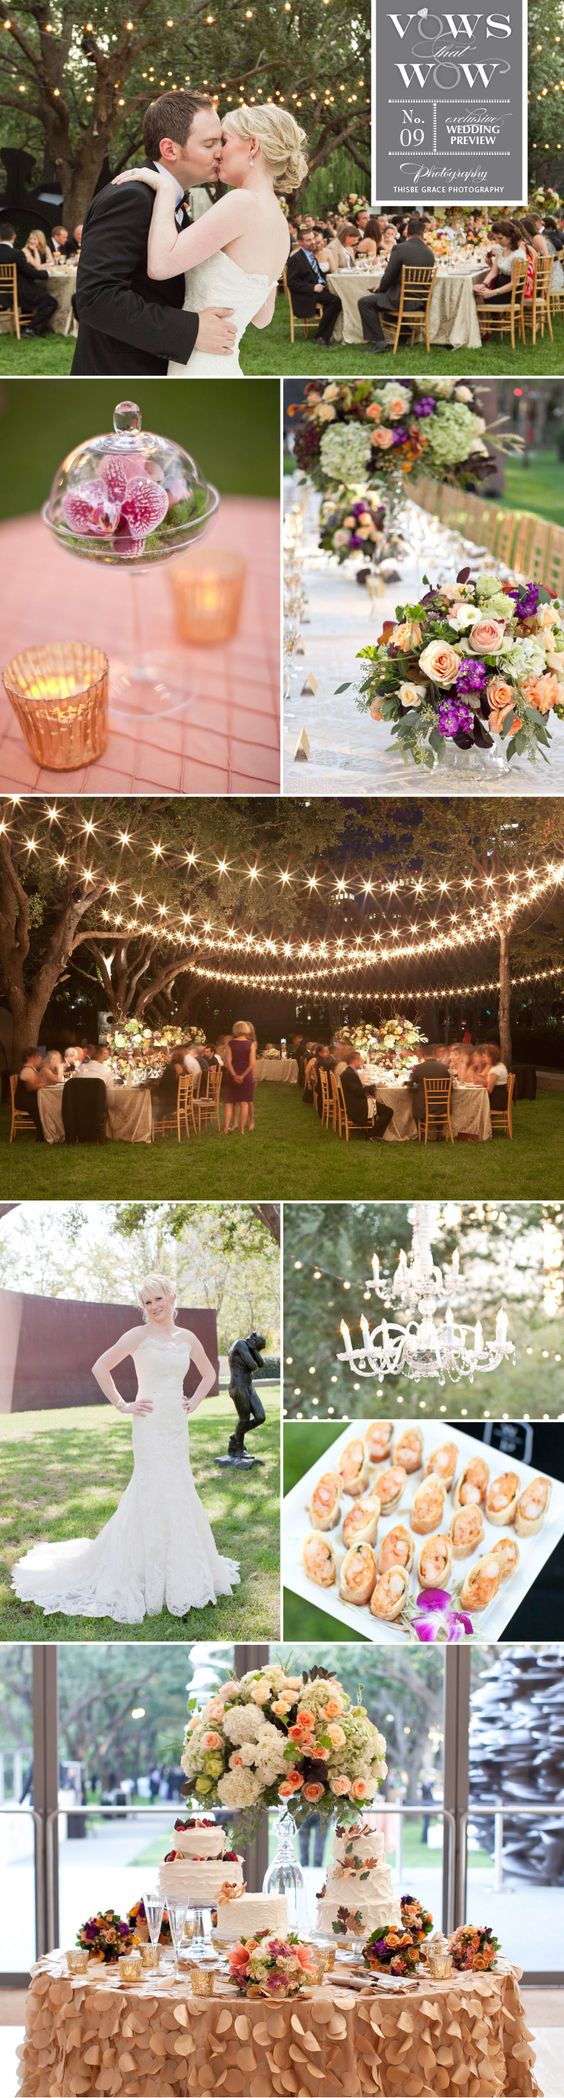 Fabulous outdoor fall wedding coordinated by Jordan Payne Events! Gorgeous outdoor lighting from Beyond!  Photos by Thisbe Grace Photography  #fall #wedding #outdoor #chandeliers #lighting: Chandeliers Lighting, Outdoor Lighting, Outdoor Chandeliers, Photography Fall, Grace Photography, Fall Wedding, Garden Weddings